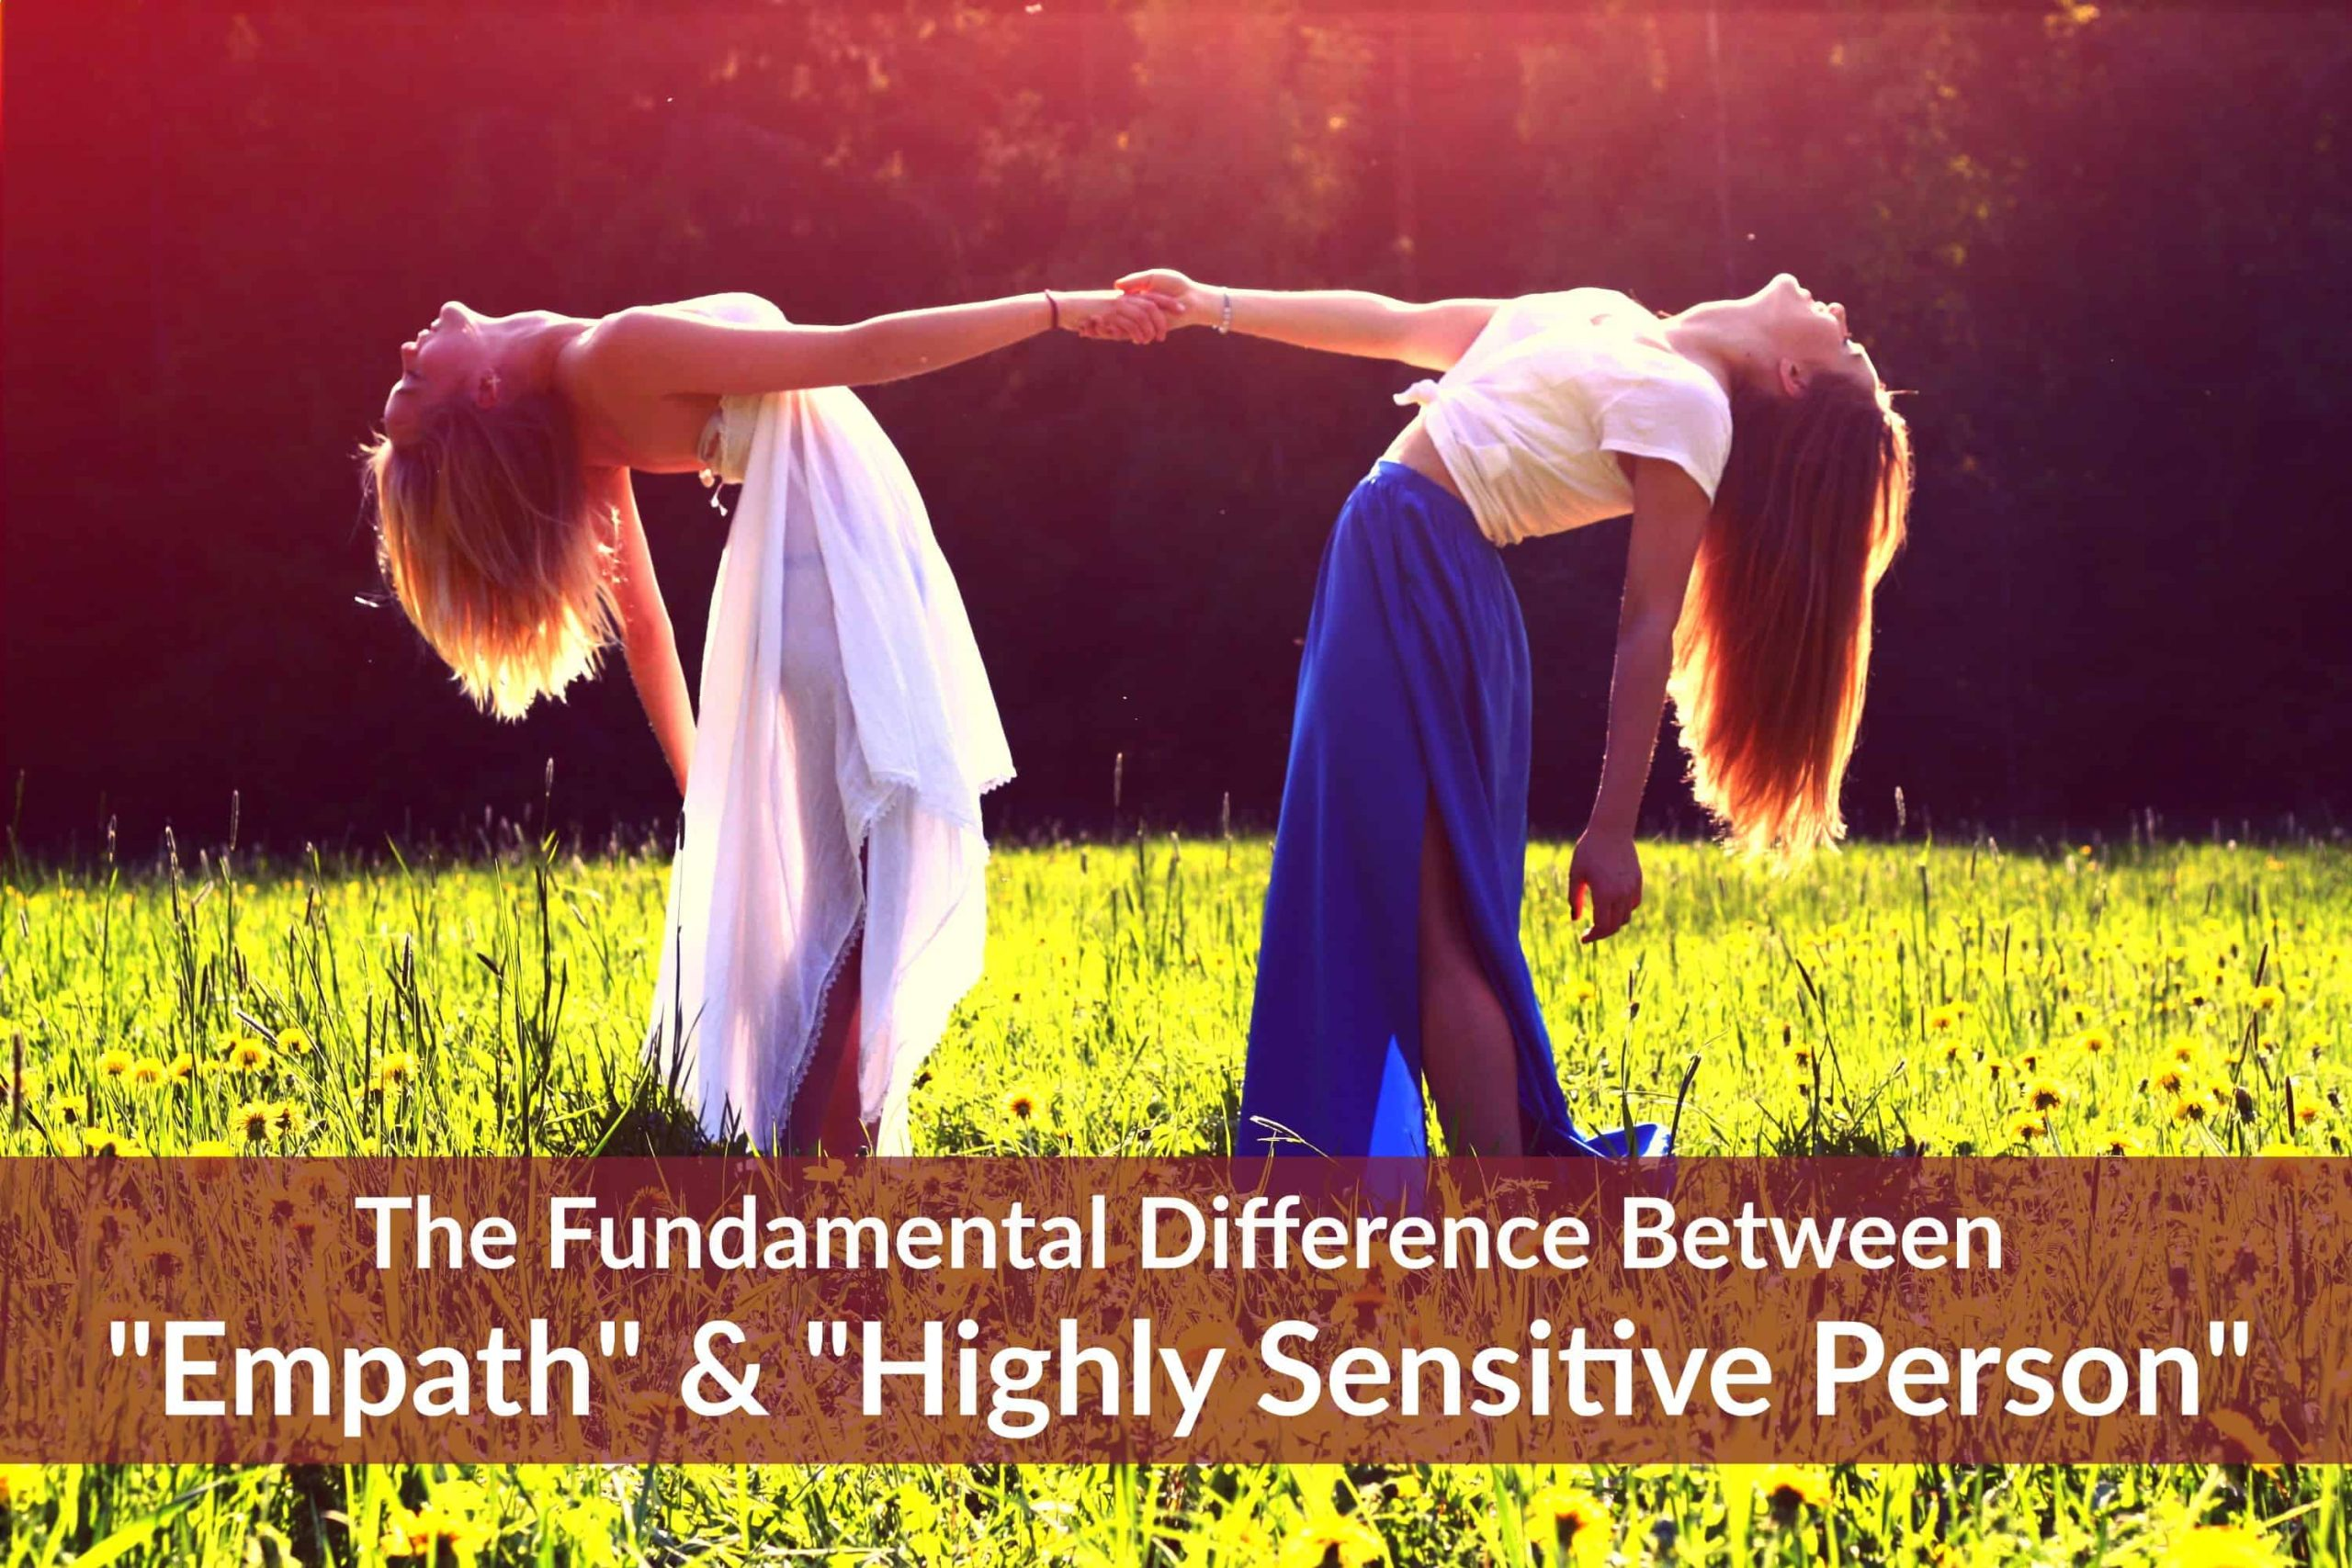 The Difference Between an Empath and Highly Sensitive Person